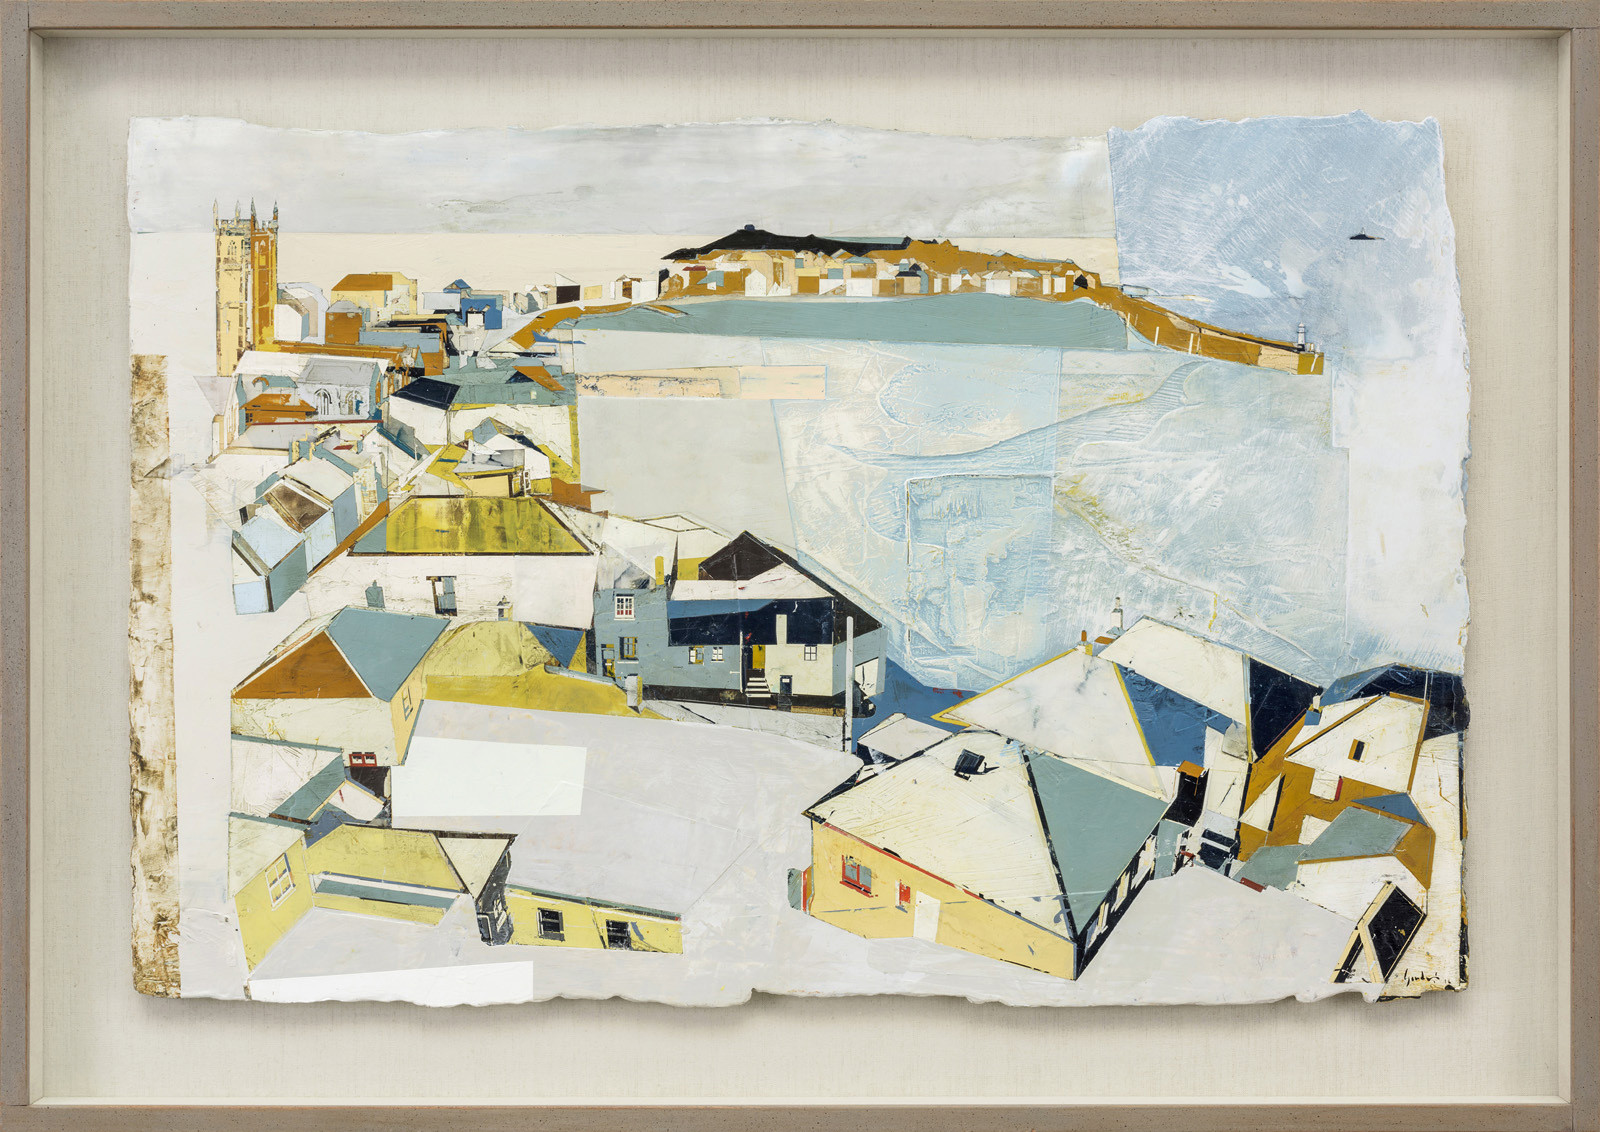 <span class=&#34;link fancybox-details-link&#34;><a href=&#34;/artists/47-jeremy-gardiner/works/701/&#34;>View Detail Page</a></span><div class=&#34;artist&#34;><strong>Jeremy Gardiner</strong></div> Born 1957 <div class=&#34;title&#34;><em>Winter Morning, St. Ives Harbour, Cornwall</em></div> <div class=&#34;signed_and_dated&#34;>signed and dated 2016<br /> titled verso</div> <div class=&#34;medium&#34;>acrylic and jesmonite on poplar panel</div> <div class=&#34;dimensions&#34;>61 x 91.5 cms (24 x 36 ins)</div>